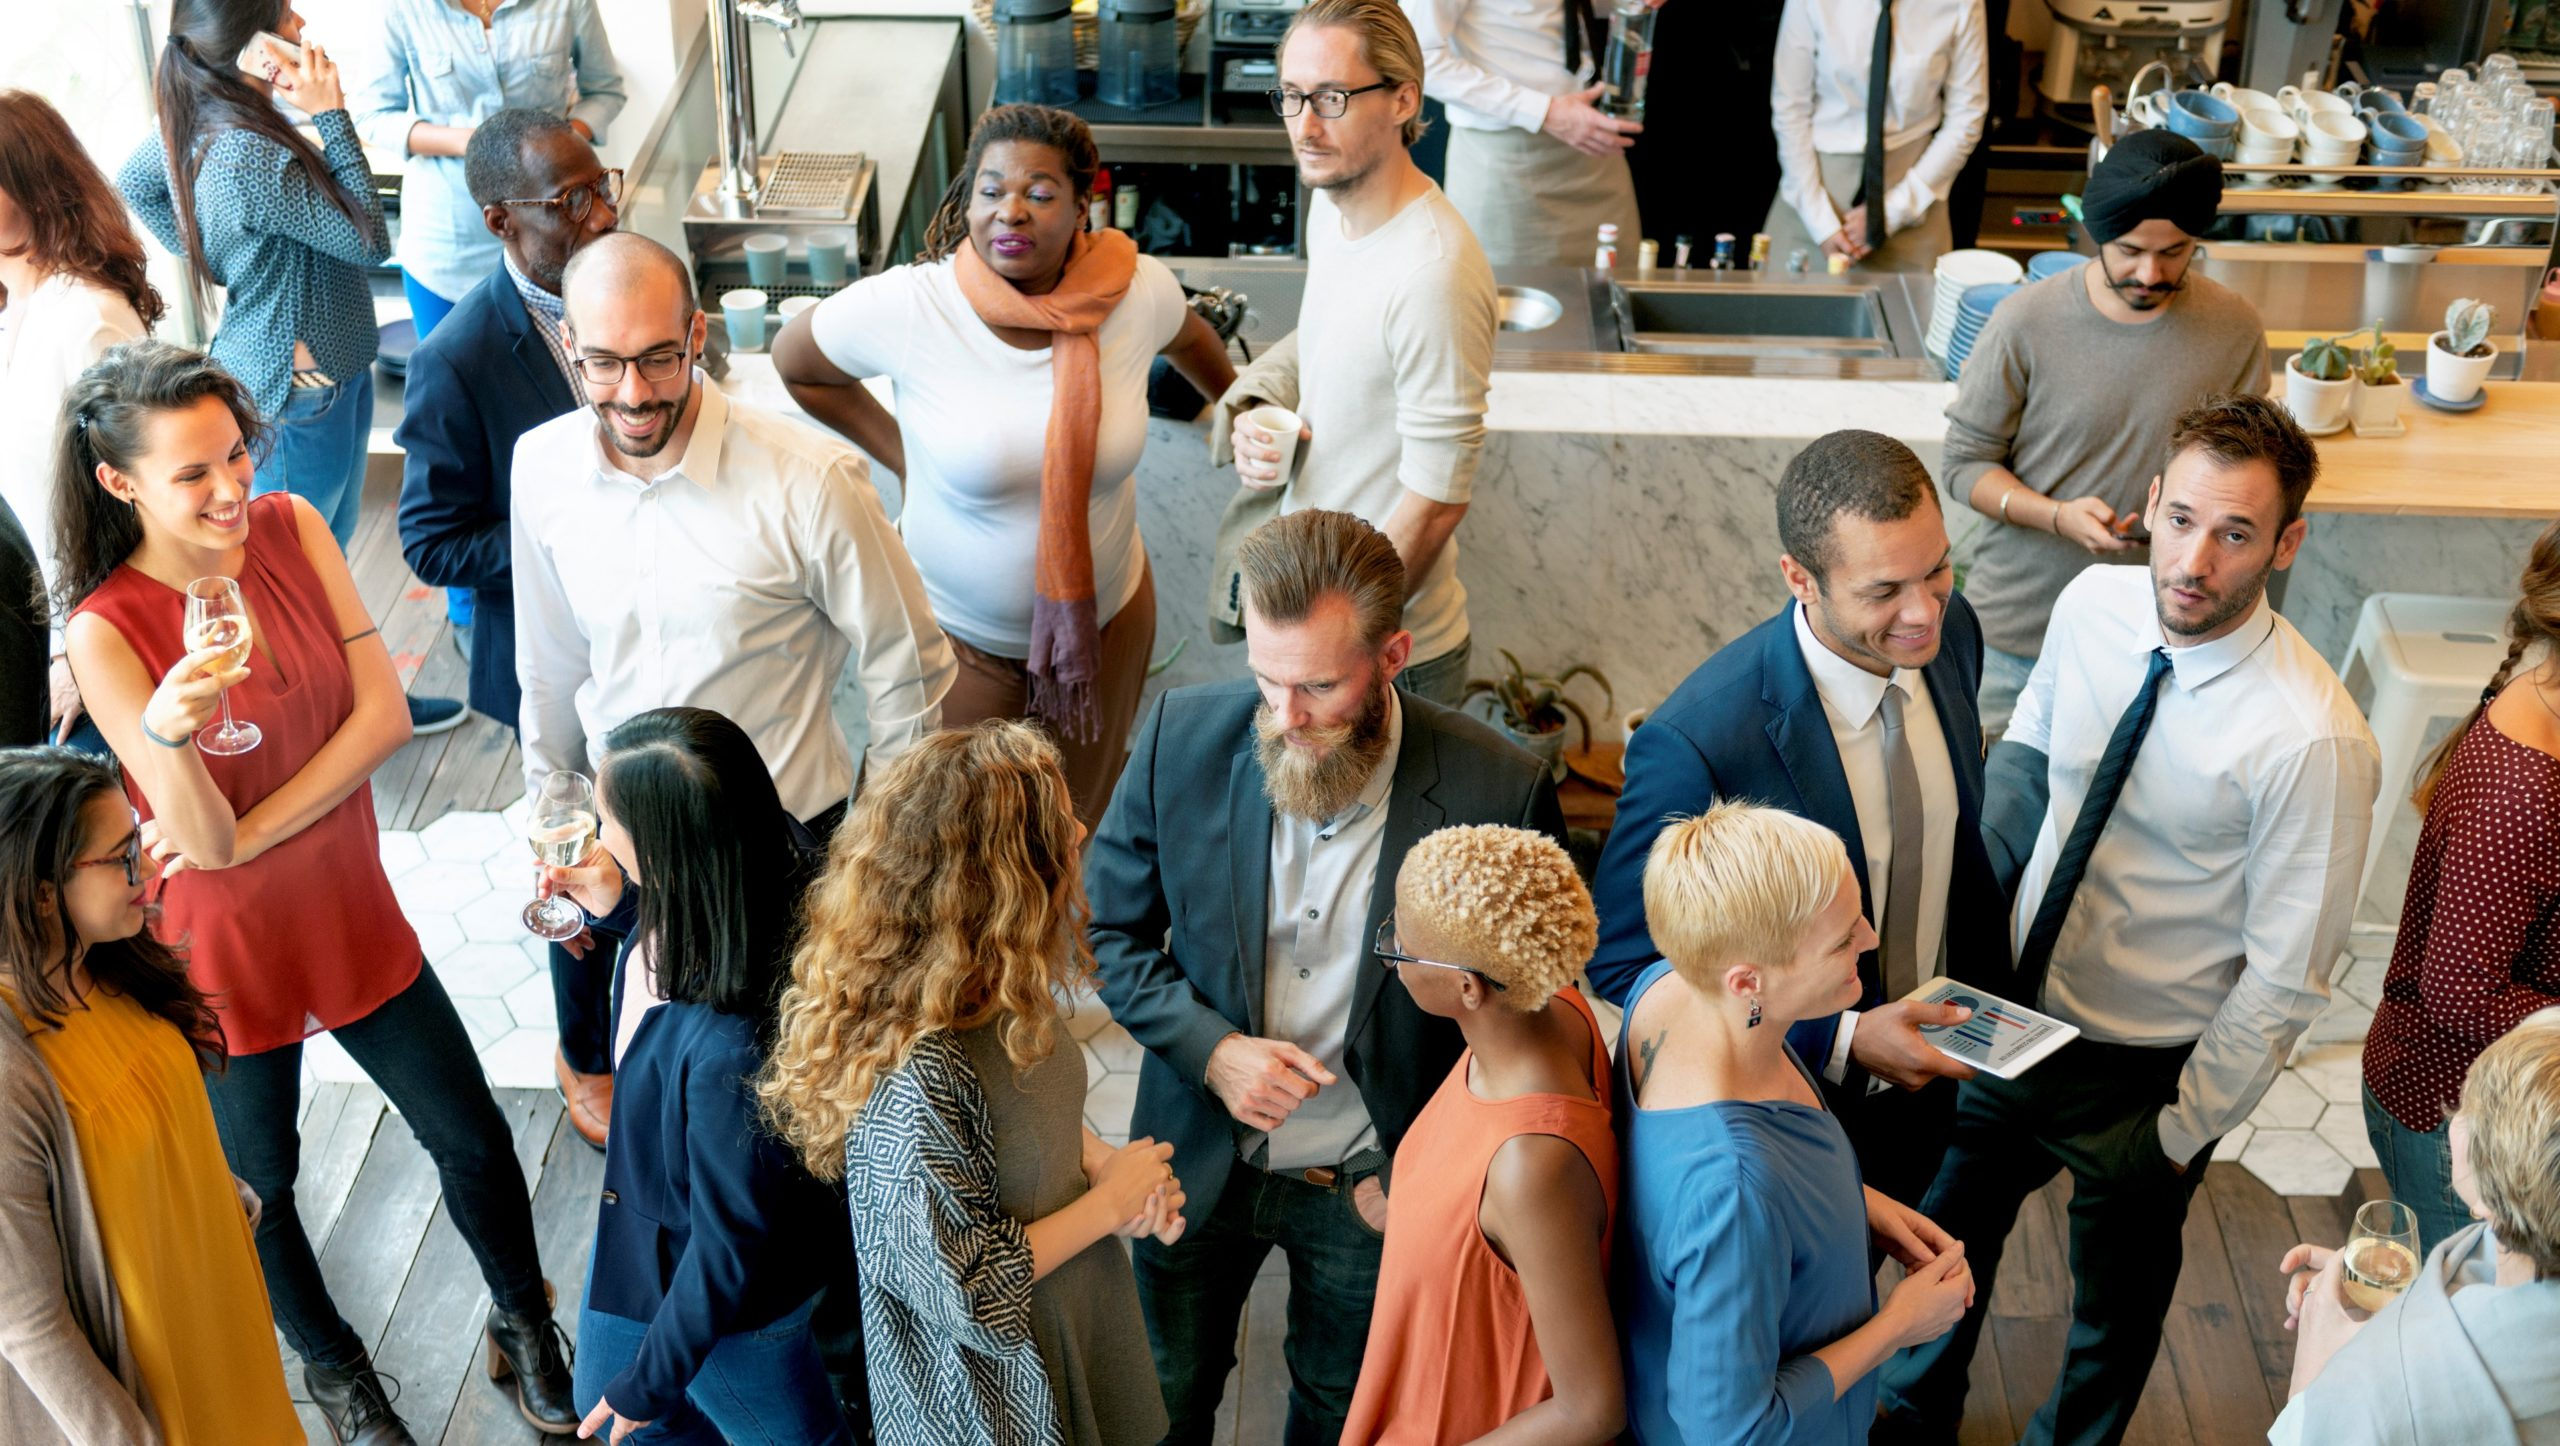 Diverse group of people talking and eating at a casual networking event